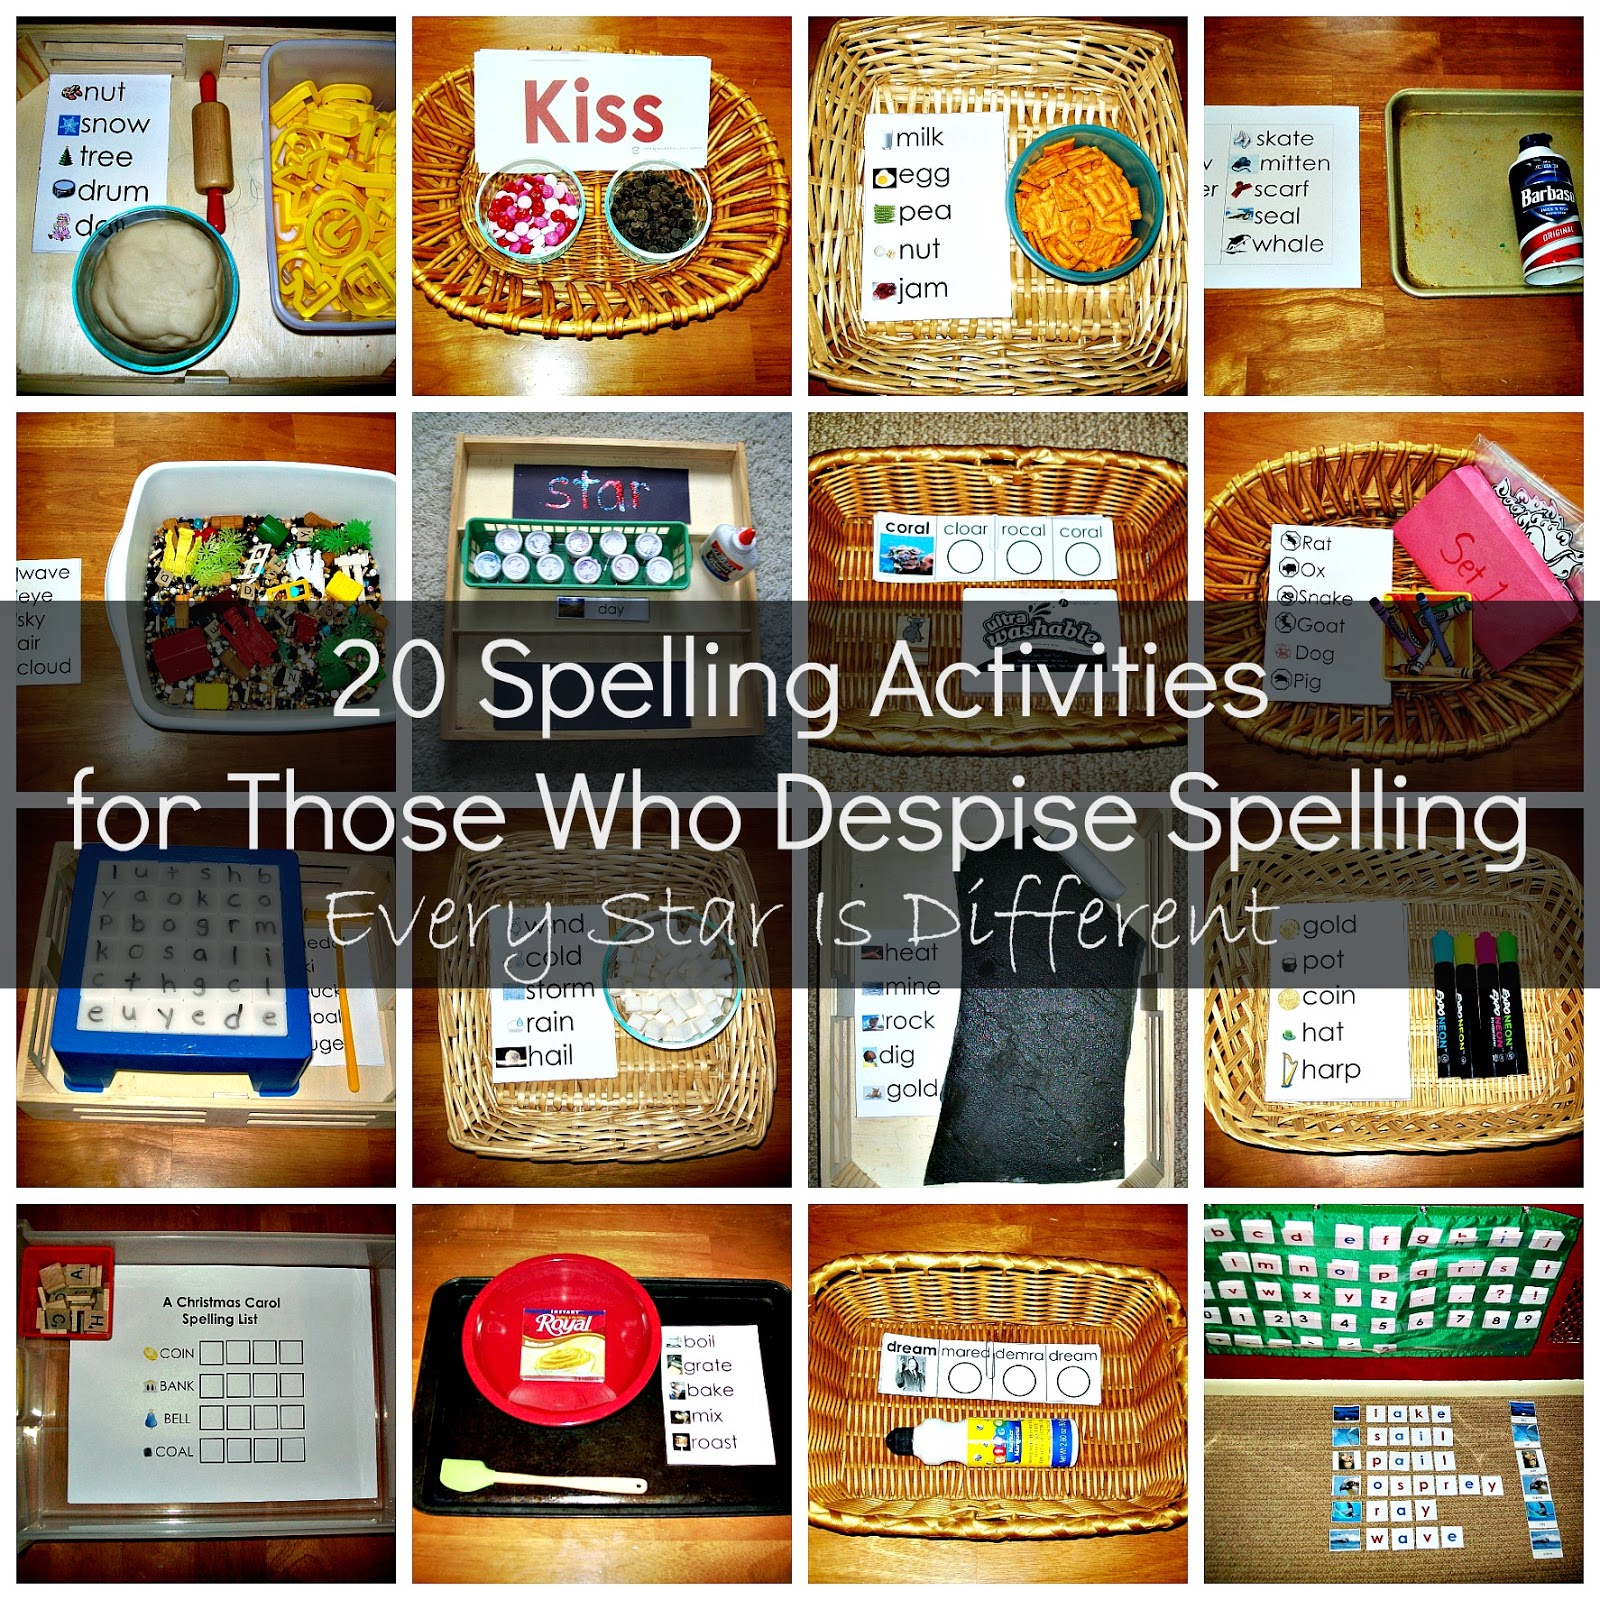 20+ Spelling Activities for Those Who Despise Spelling